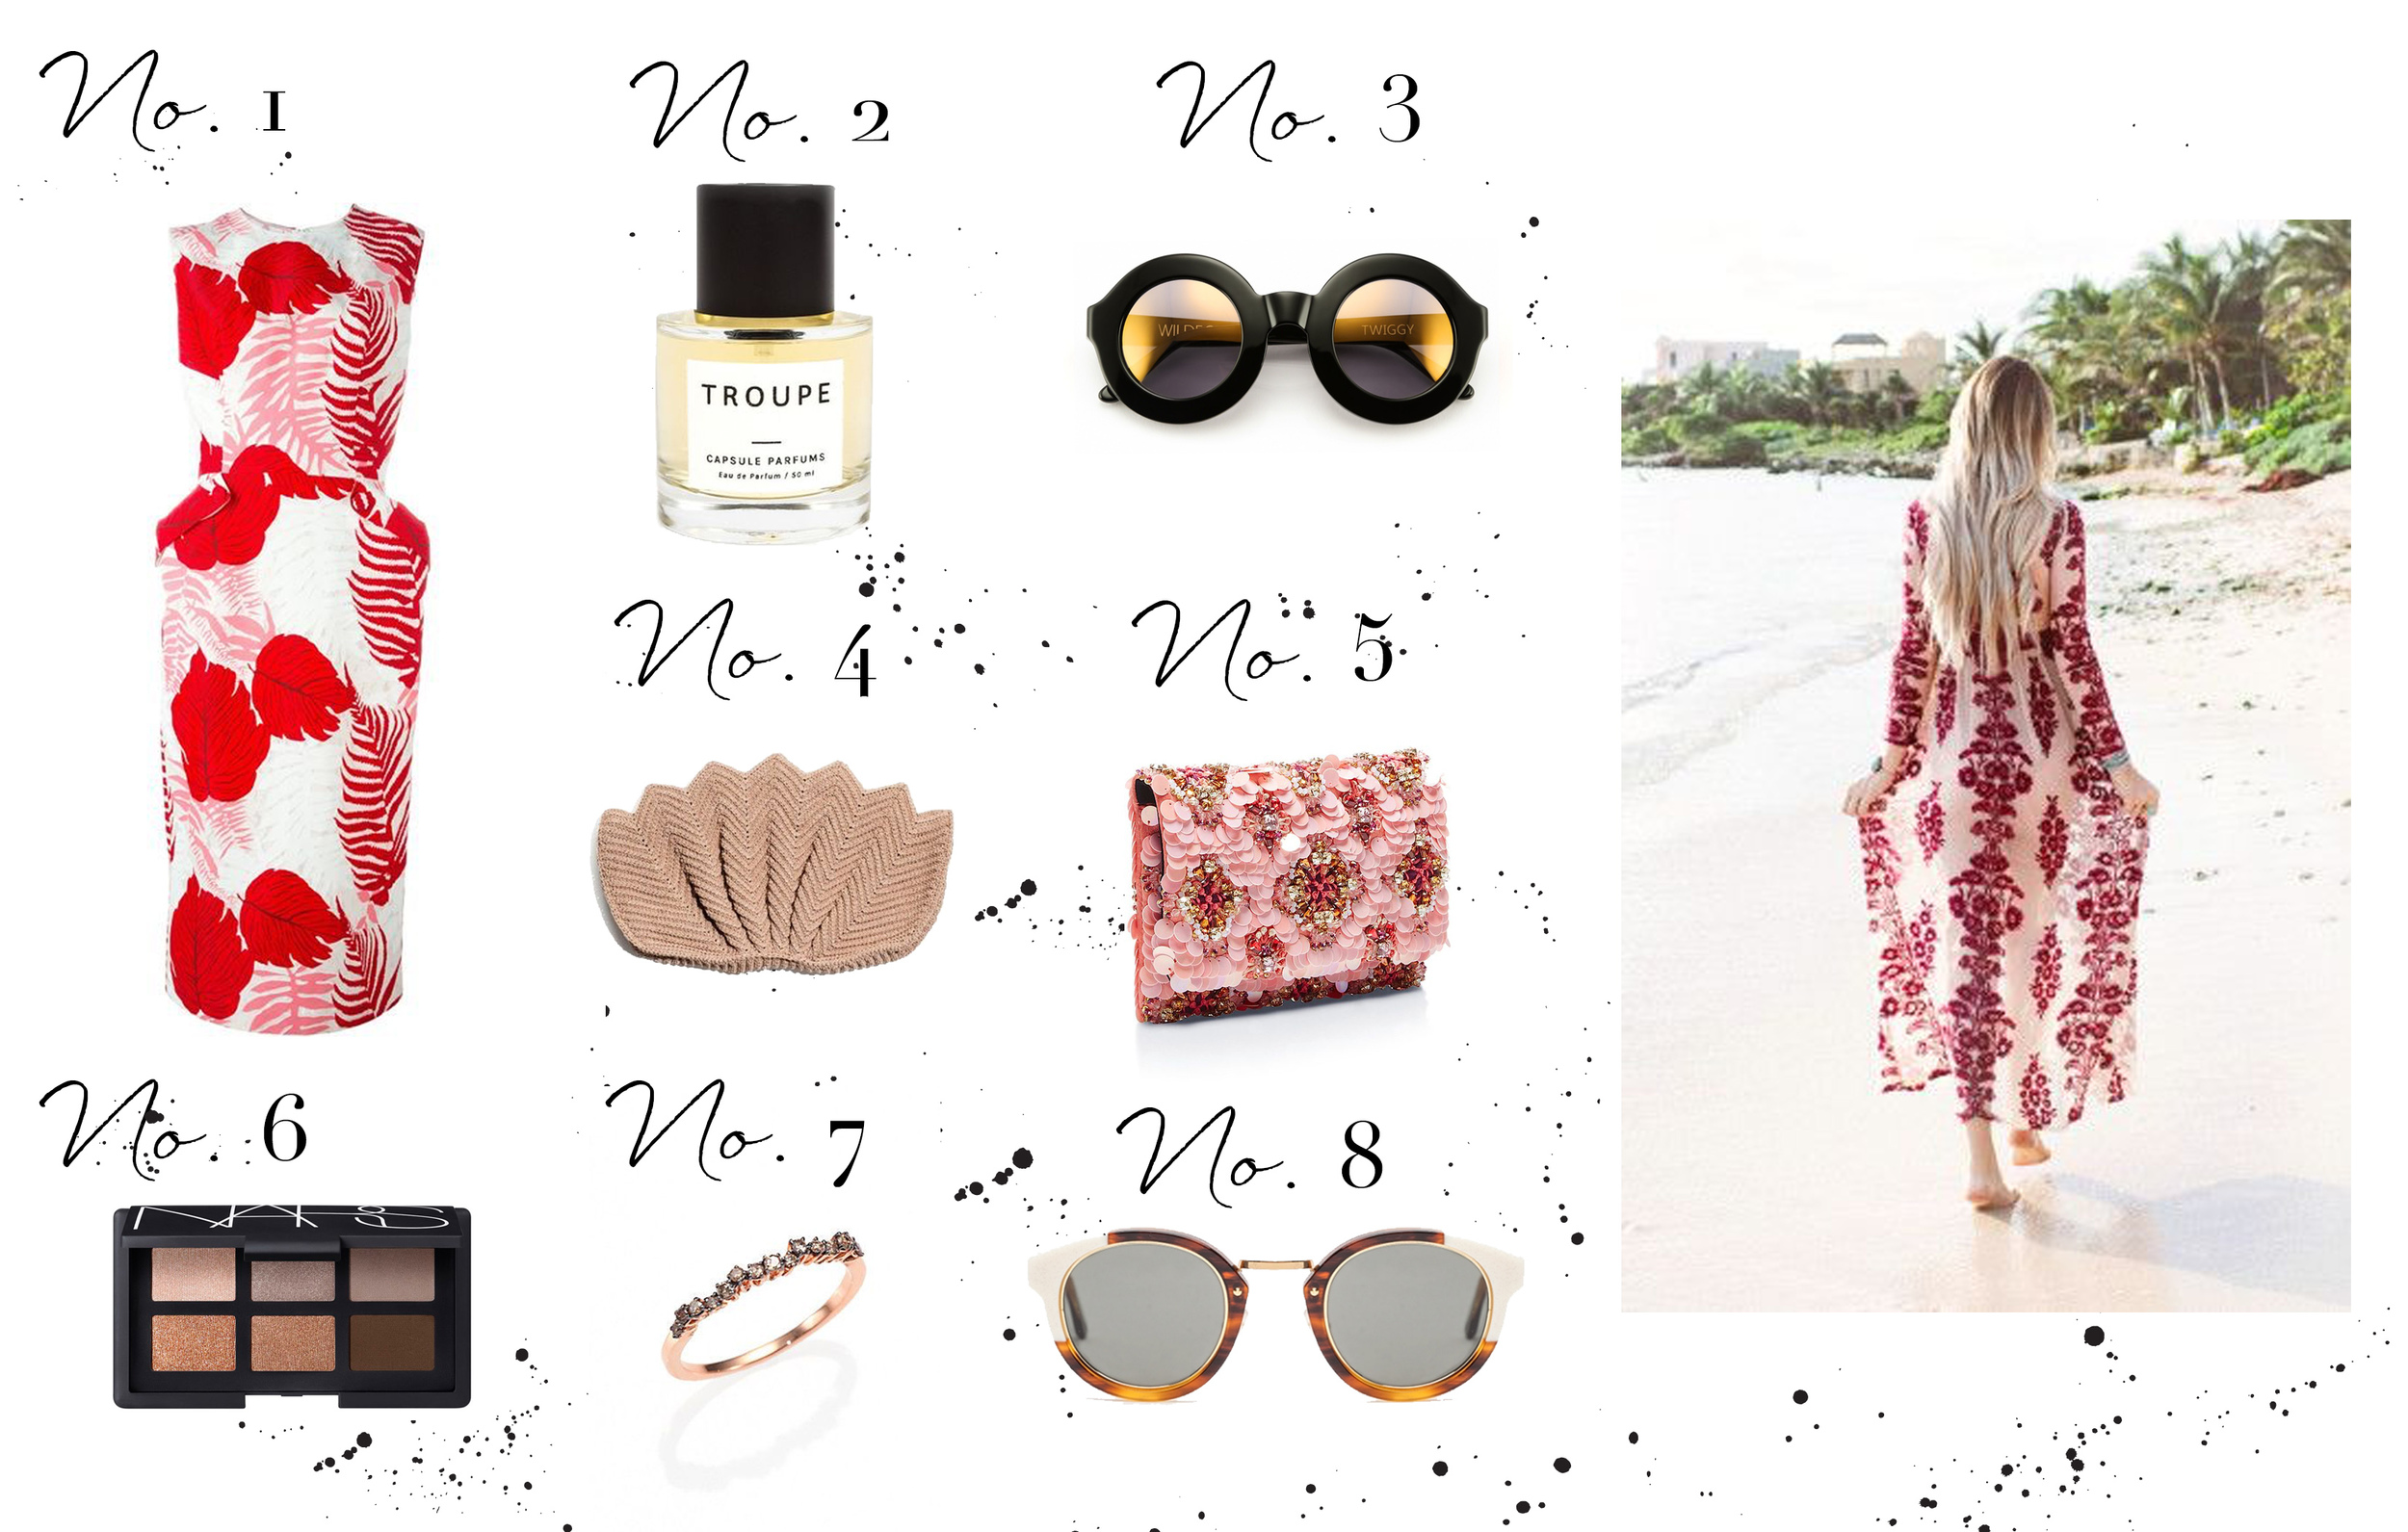 { image 1 }{ image 2 } { image 3 } { image 4 } { image 5 } { image 6 } { image 7 } { image 8 }  { image }  { shop the faves }